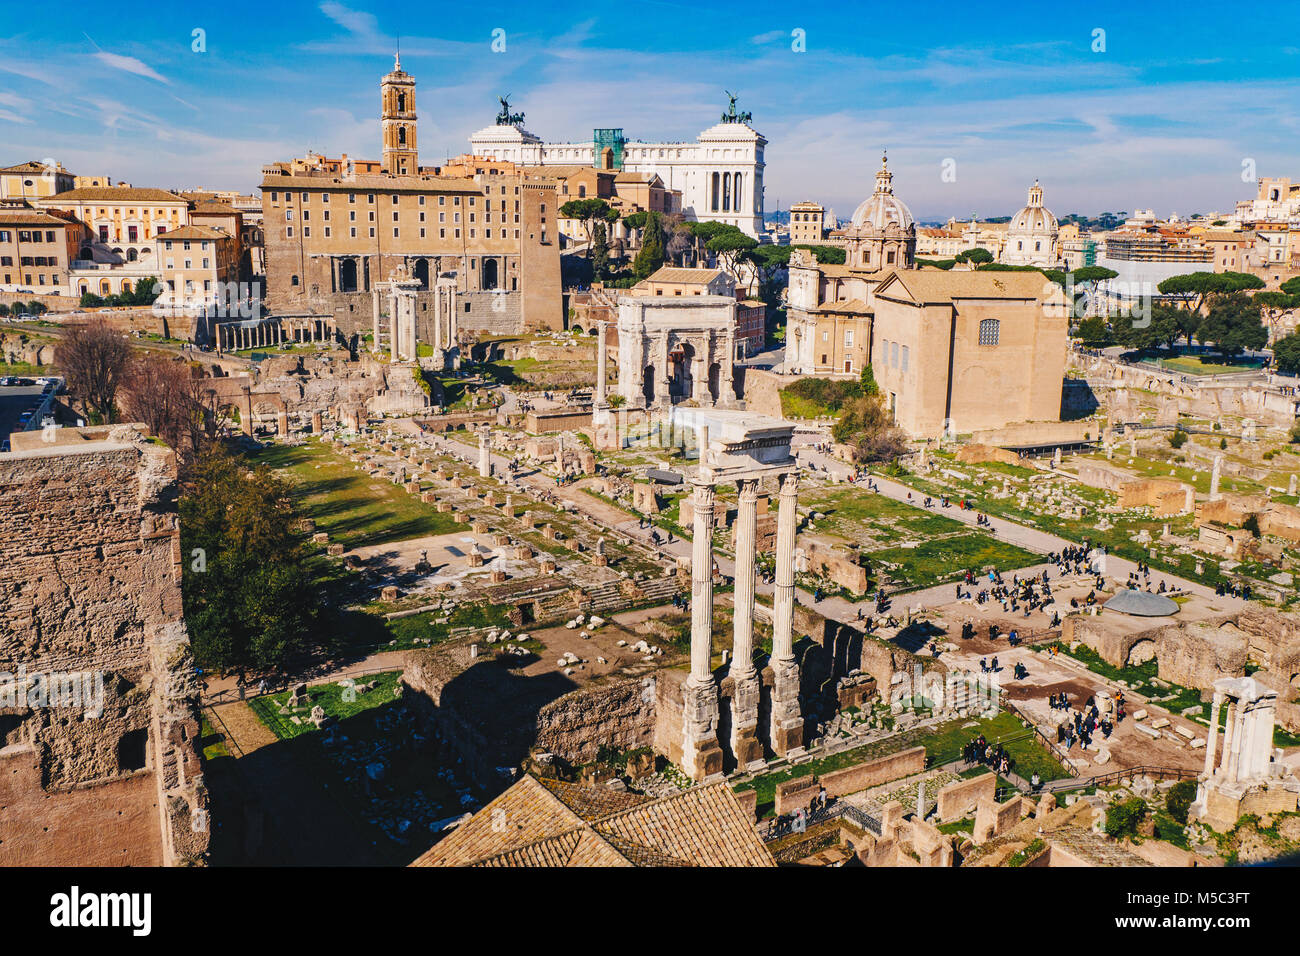 The Roman Forum (Foro Romano) and Roman ruins as seen from the Palatine Hill, Roma, Italy - Stock Image